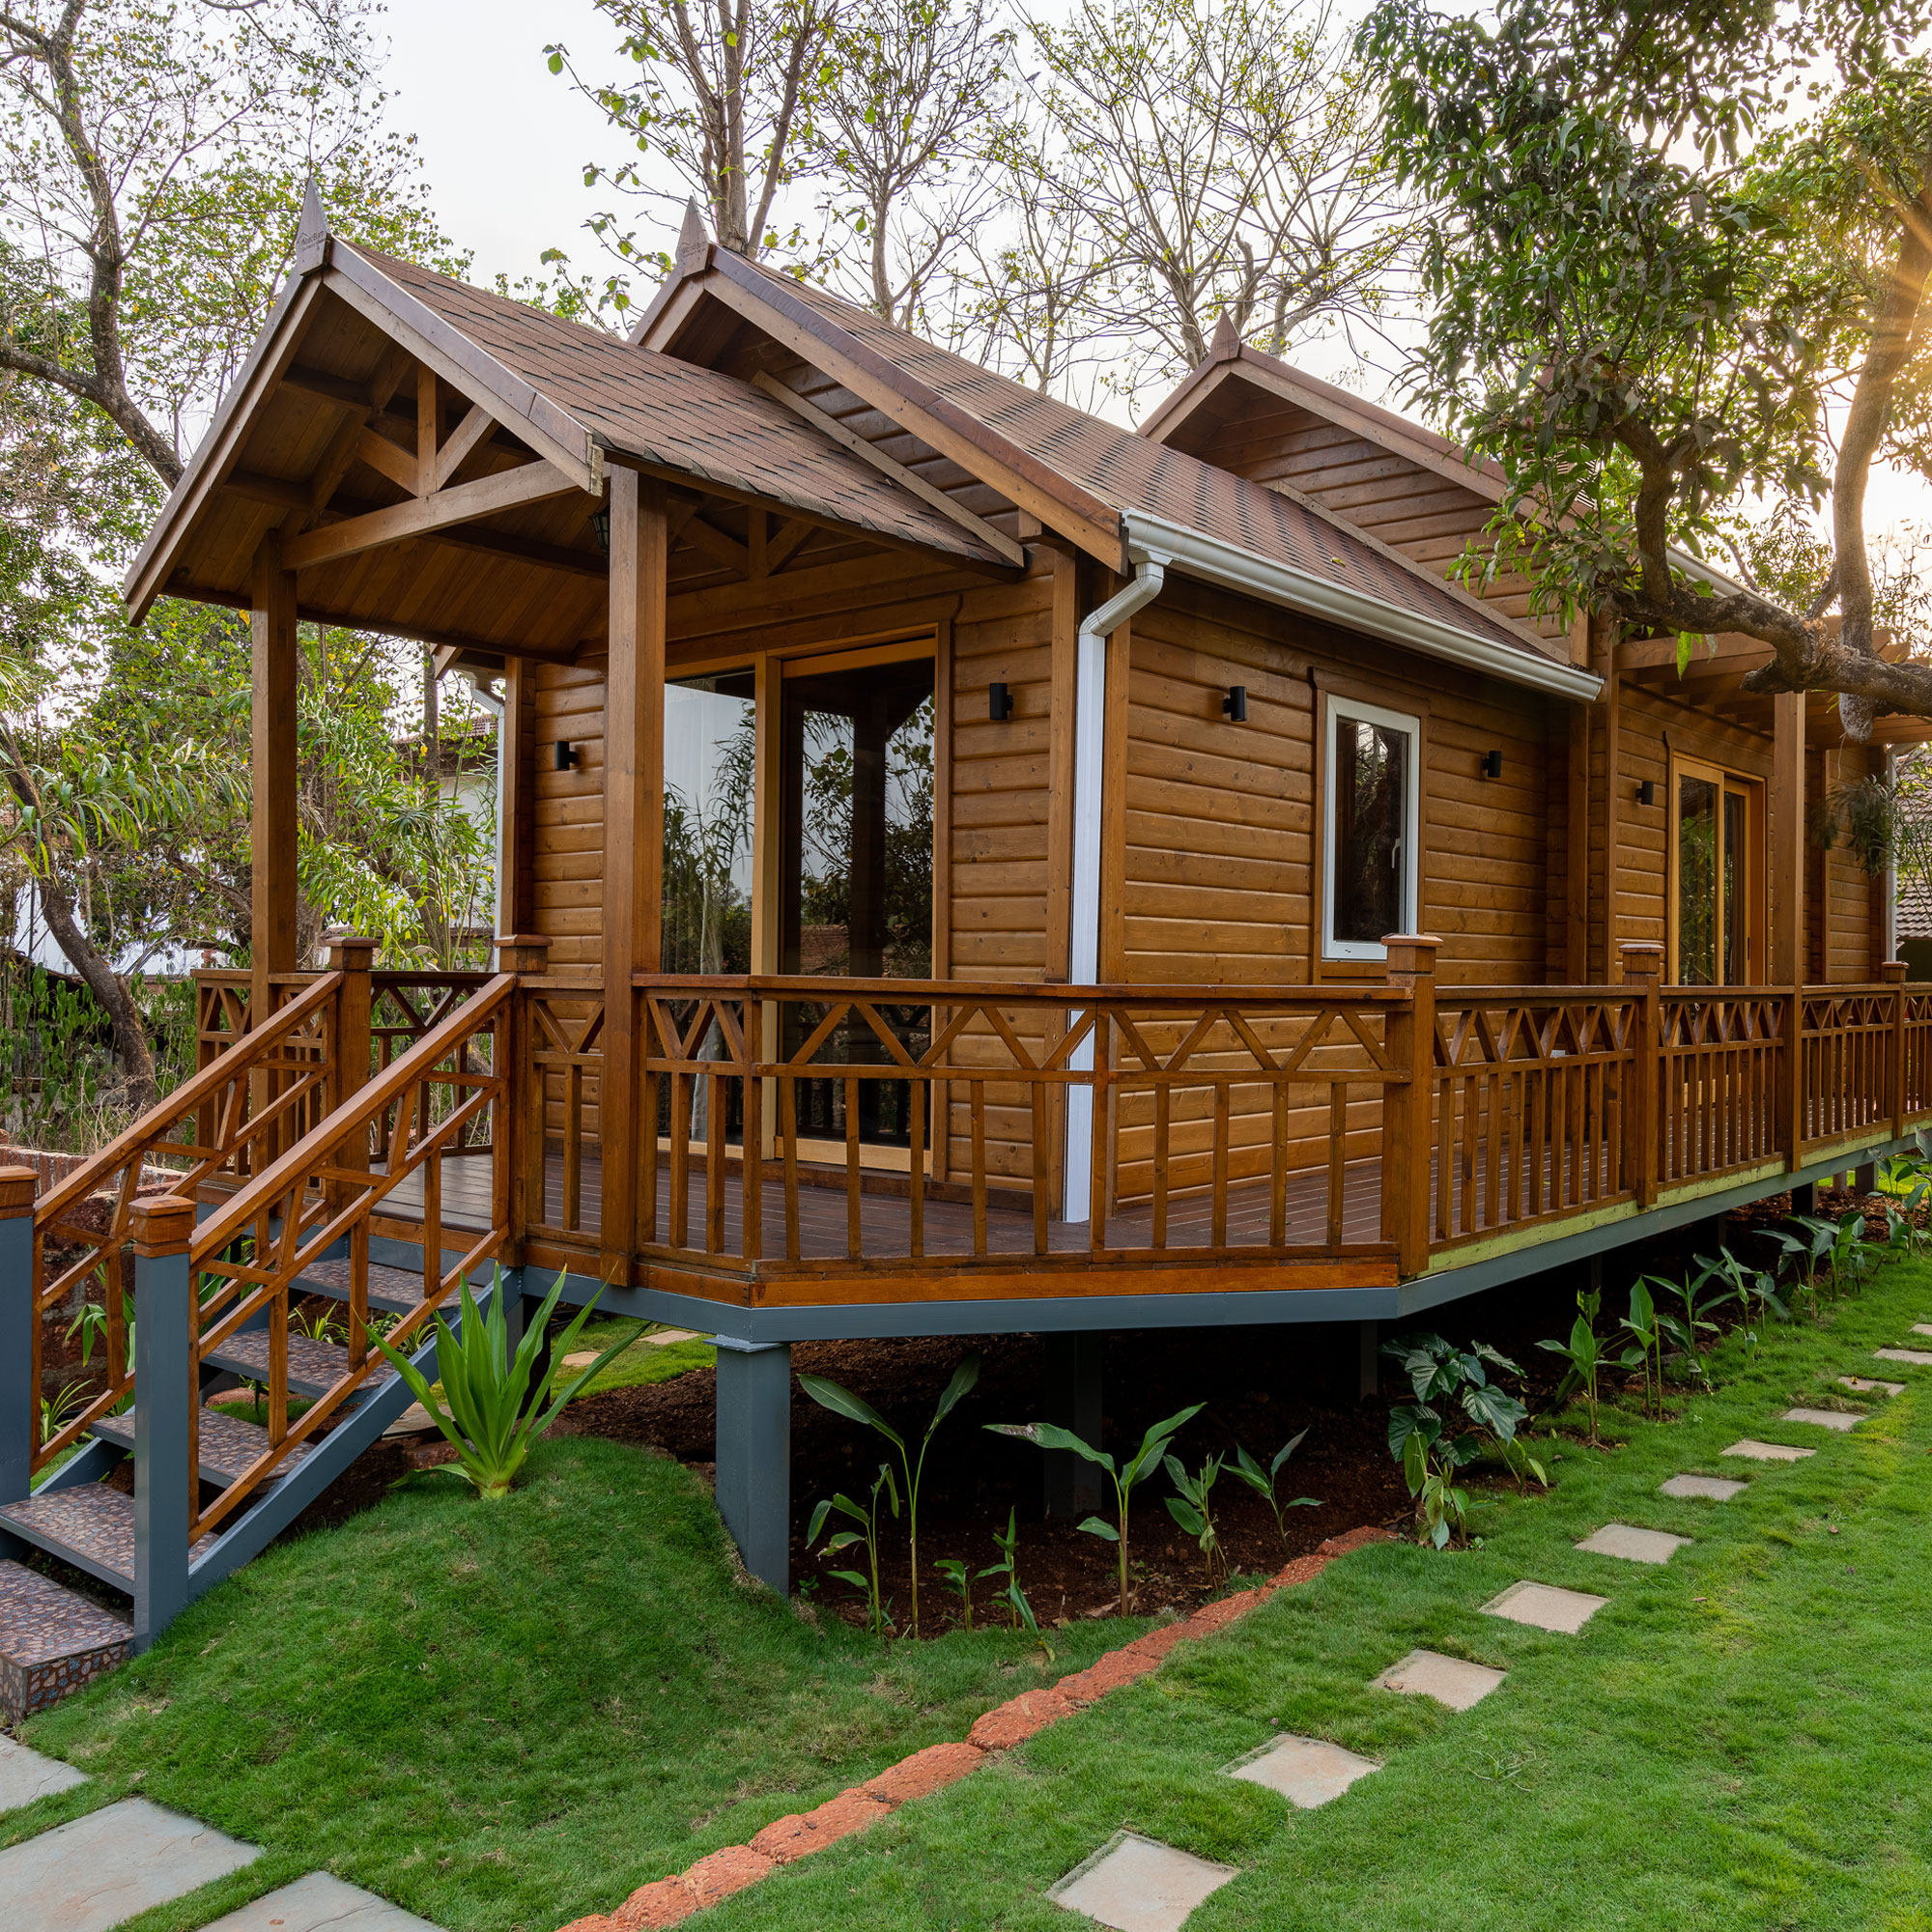 Laminated Tongue & Groove resort style cottage<abbr> Goa<br>S-P-F used for structural purposes, western hemlock for furniture, yellow cedar for doors and windows. </abbr>